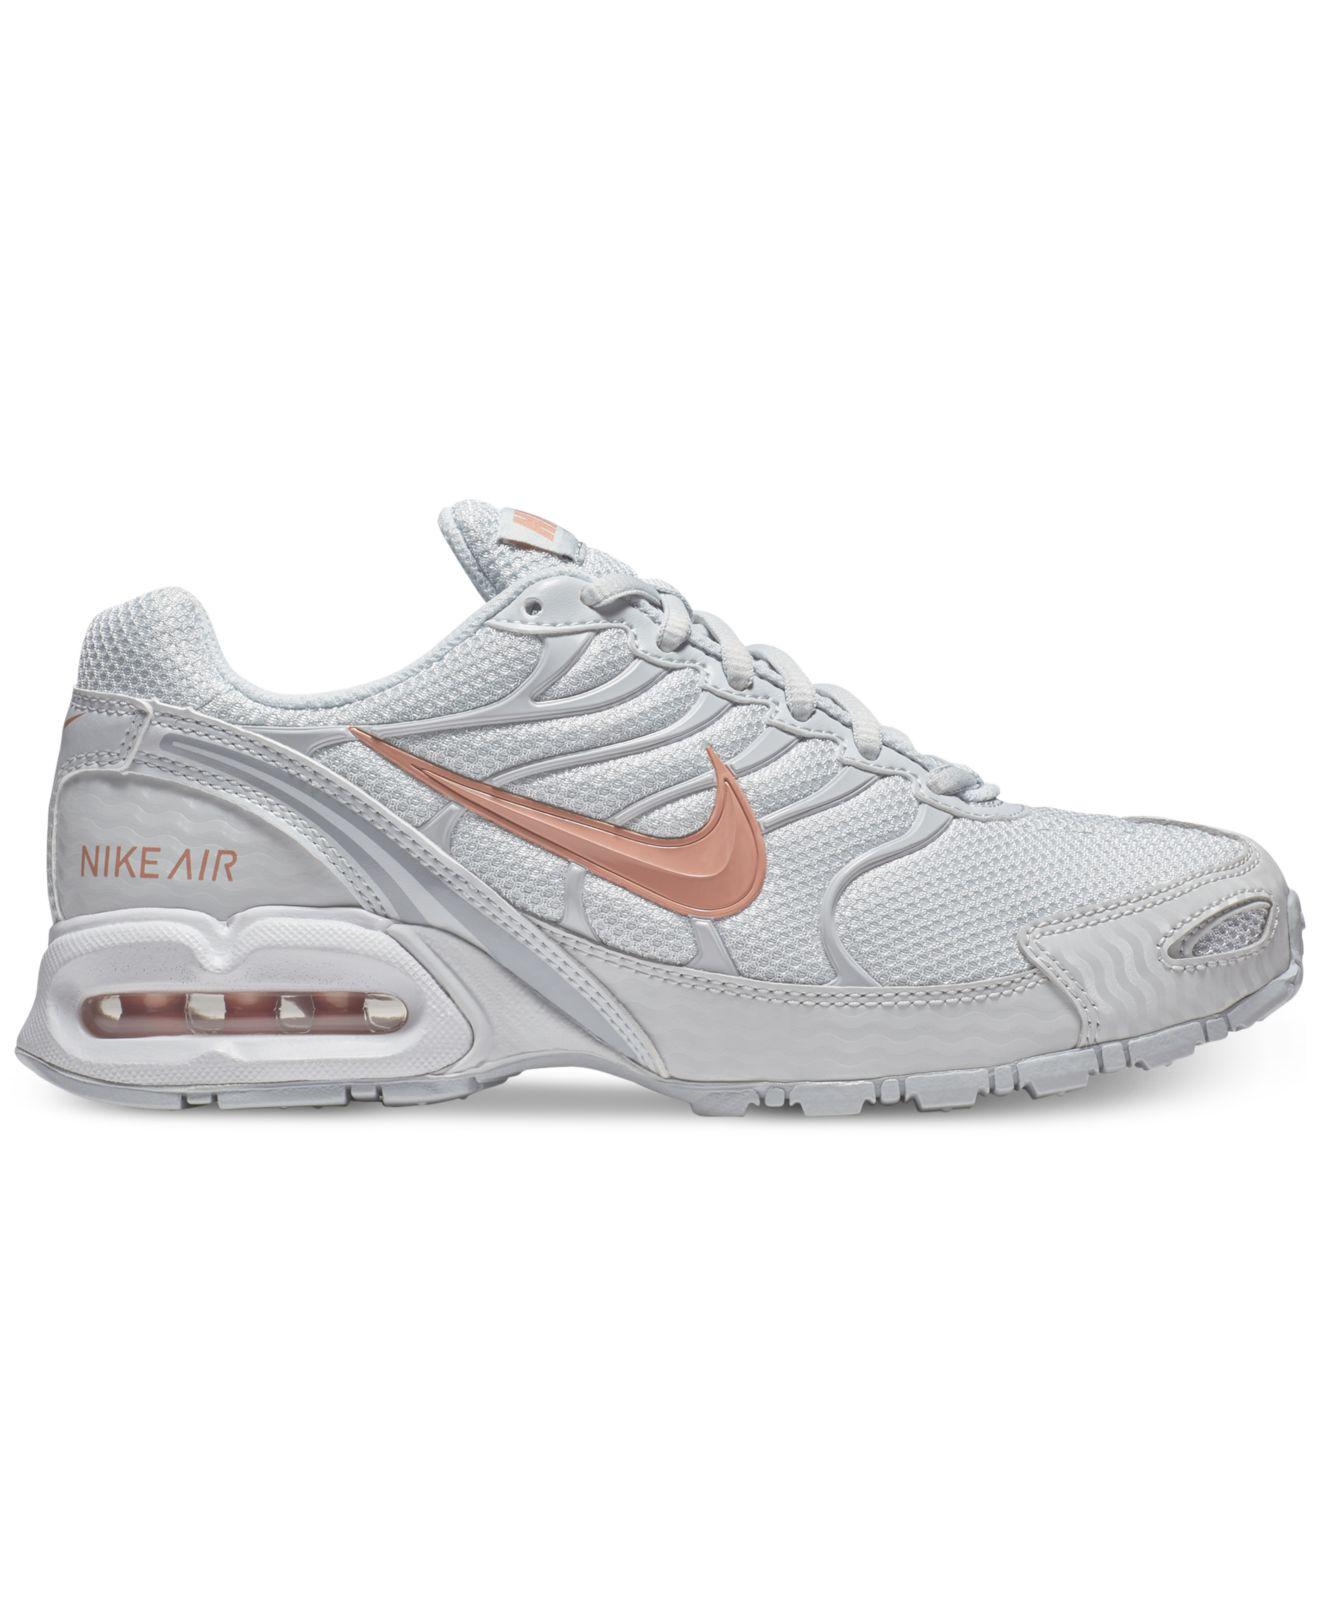 ... sweden lyst nike air max torch 4 running sneakers from finish line in  gray 22503 4ccd2 e3e18d4b8